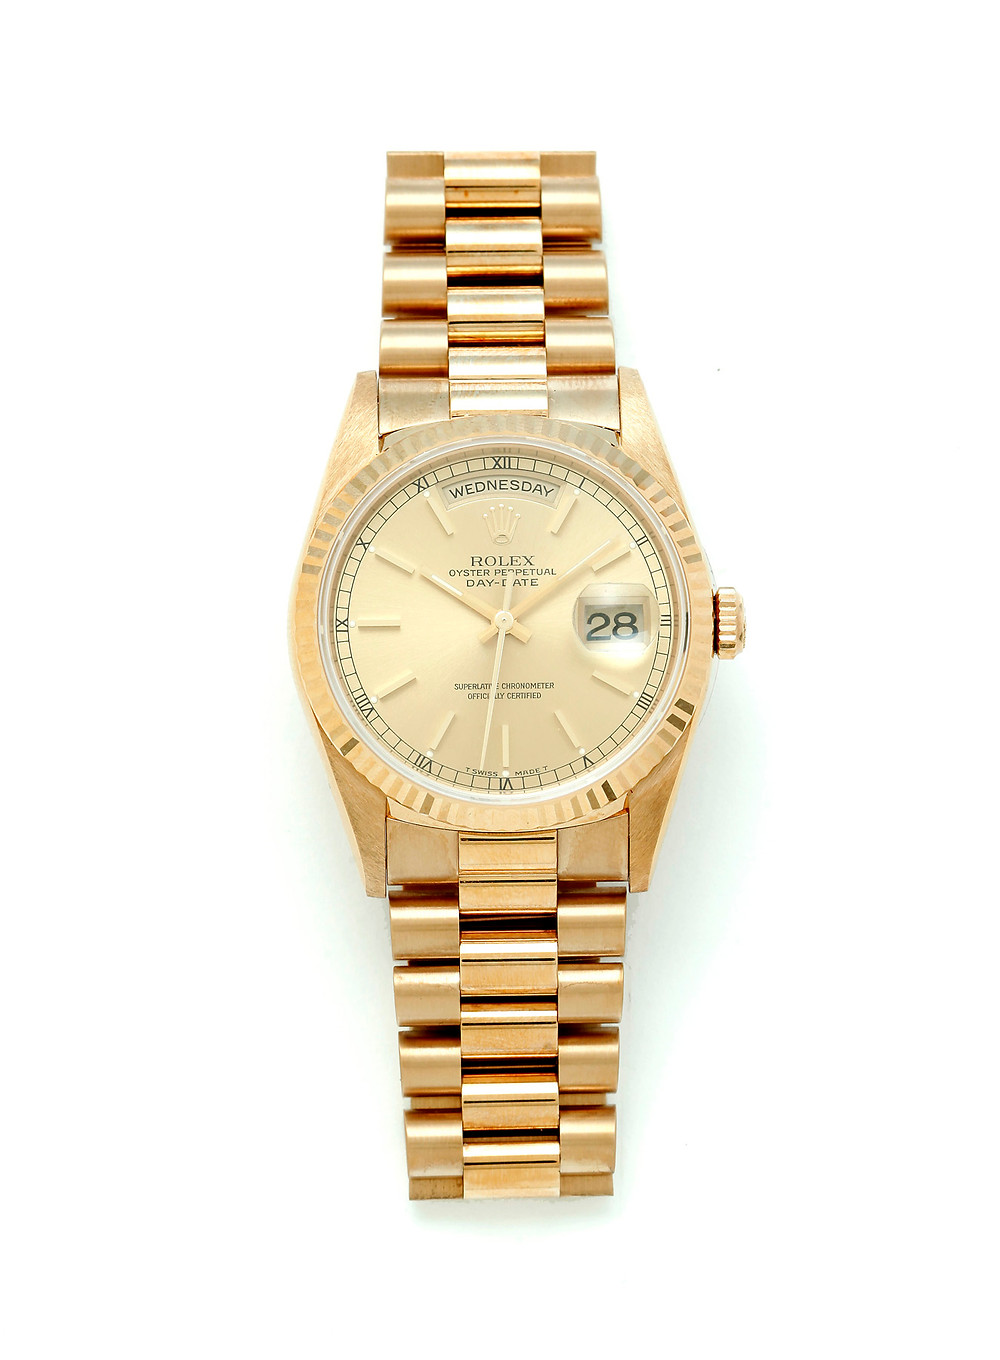 ROLEX OYSTER PERPETUAL DAY DATE PRESIDENT WATCH.